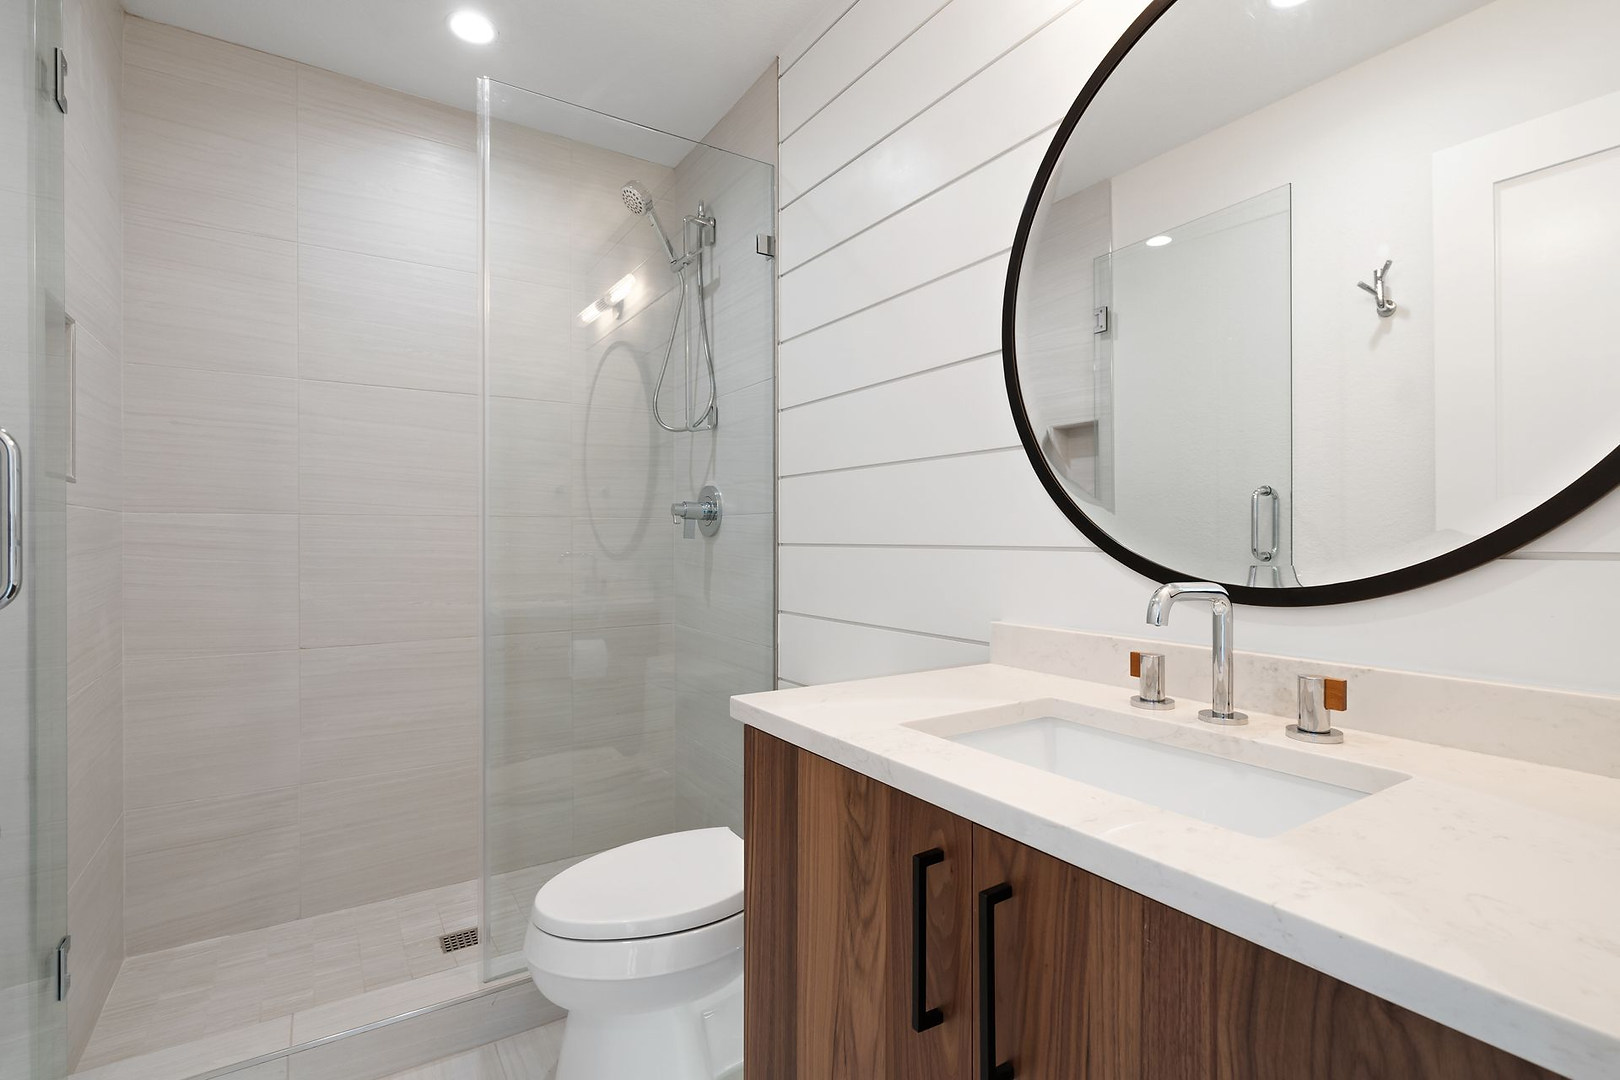 Home Renovation Guest Bathroom on Lost Horizon in Austin, TX